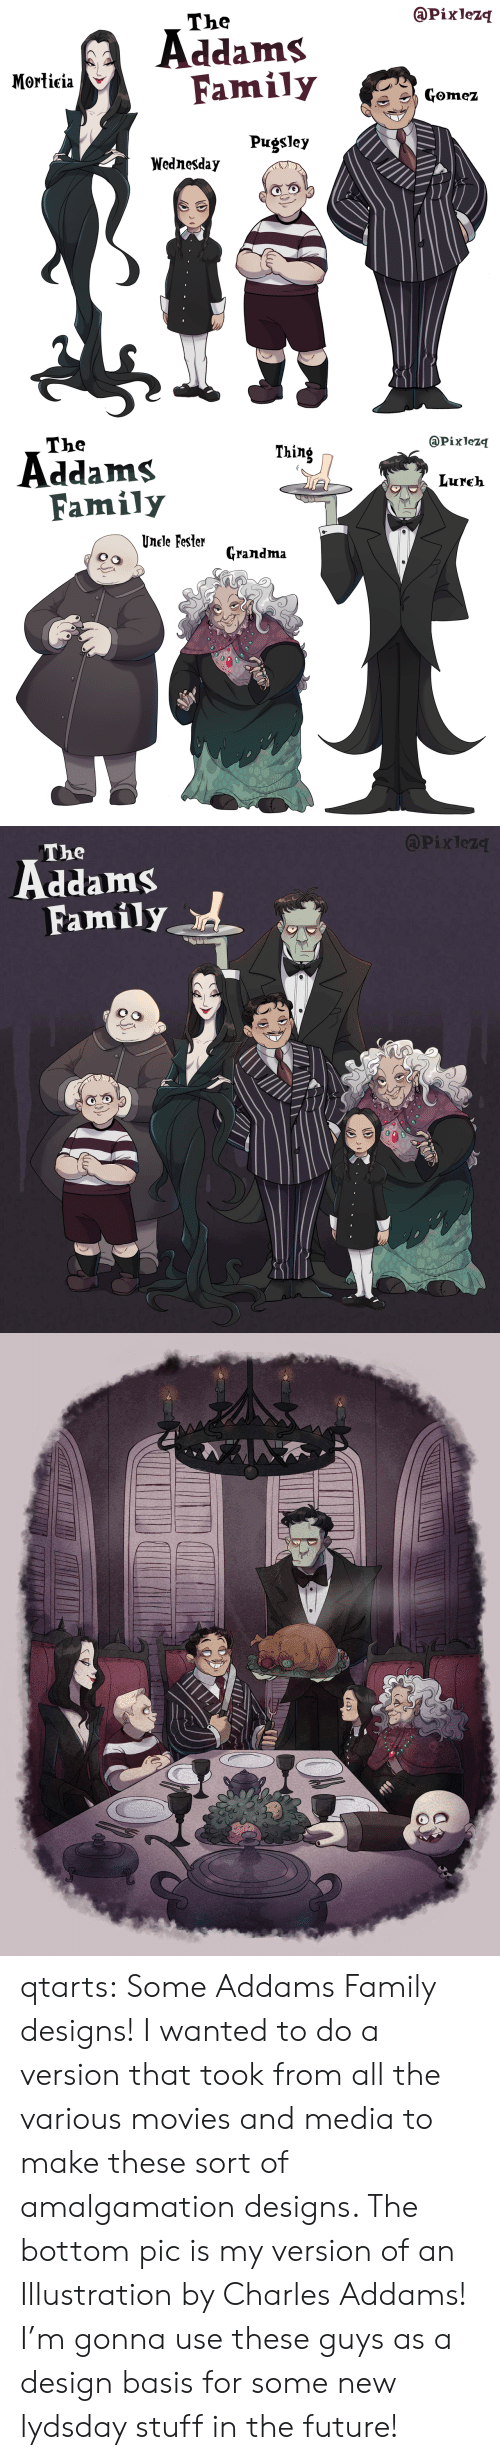 addams family: @Pixlezq  The  Addams  Family  Morticia  Gomez  Pugsley  Wednesday   @Pixlezq  The  Thing  Addams  Family  Lureh  Unele Fester  Grandma   APixlez  The  Family qtarts: Some Addams Family designs! I wanted to do a version that took from all the various movies and media to make these sort of amalgamation designs. The bottom pic is my version of an Illustration by Charles Addams! I'm gonna use these guys as a design basis for some new lydsday stuff in the future!